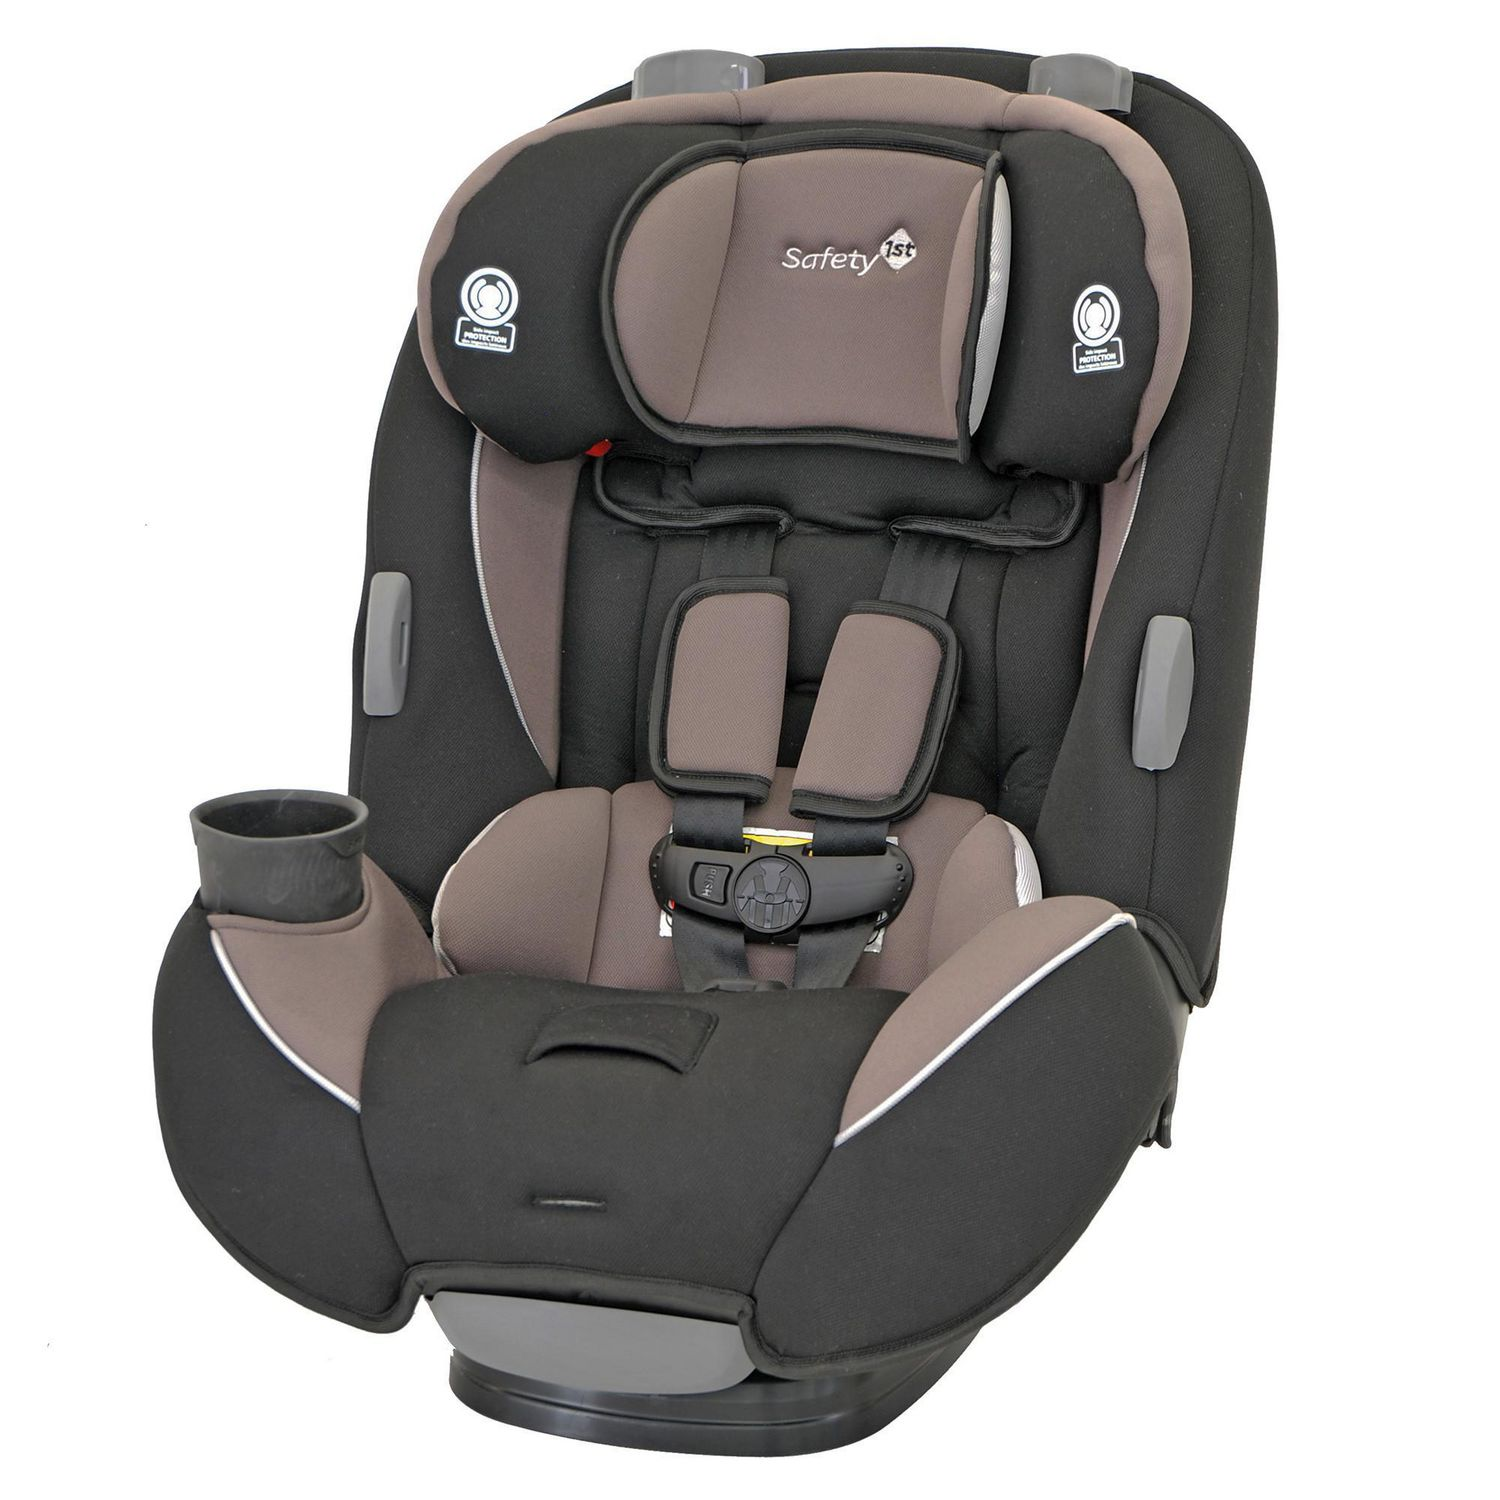 Safety 1st® Grow and Go™ Sport 3-in-1 Convertible Car Seat | Walmart